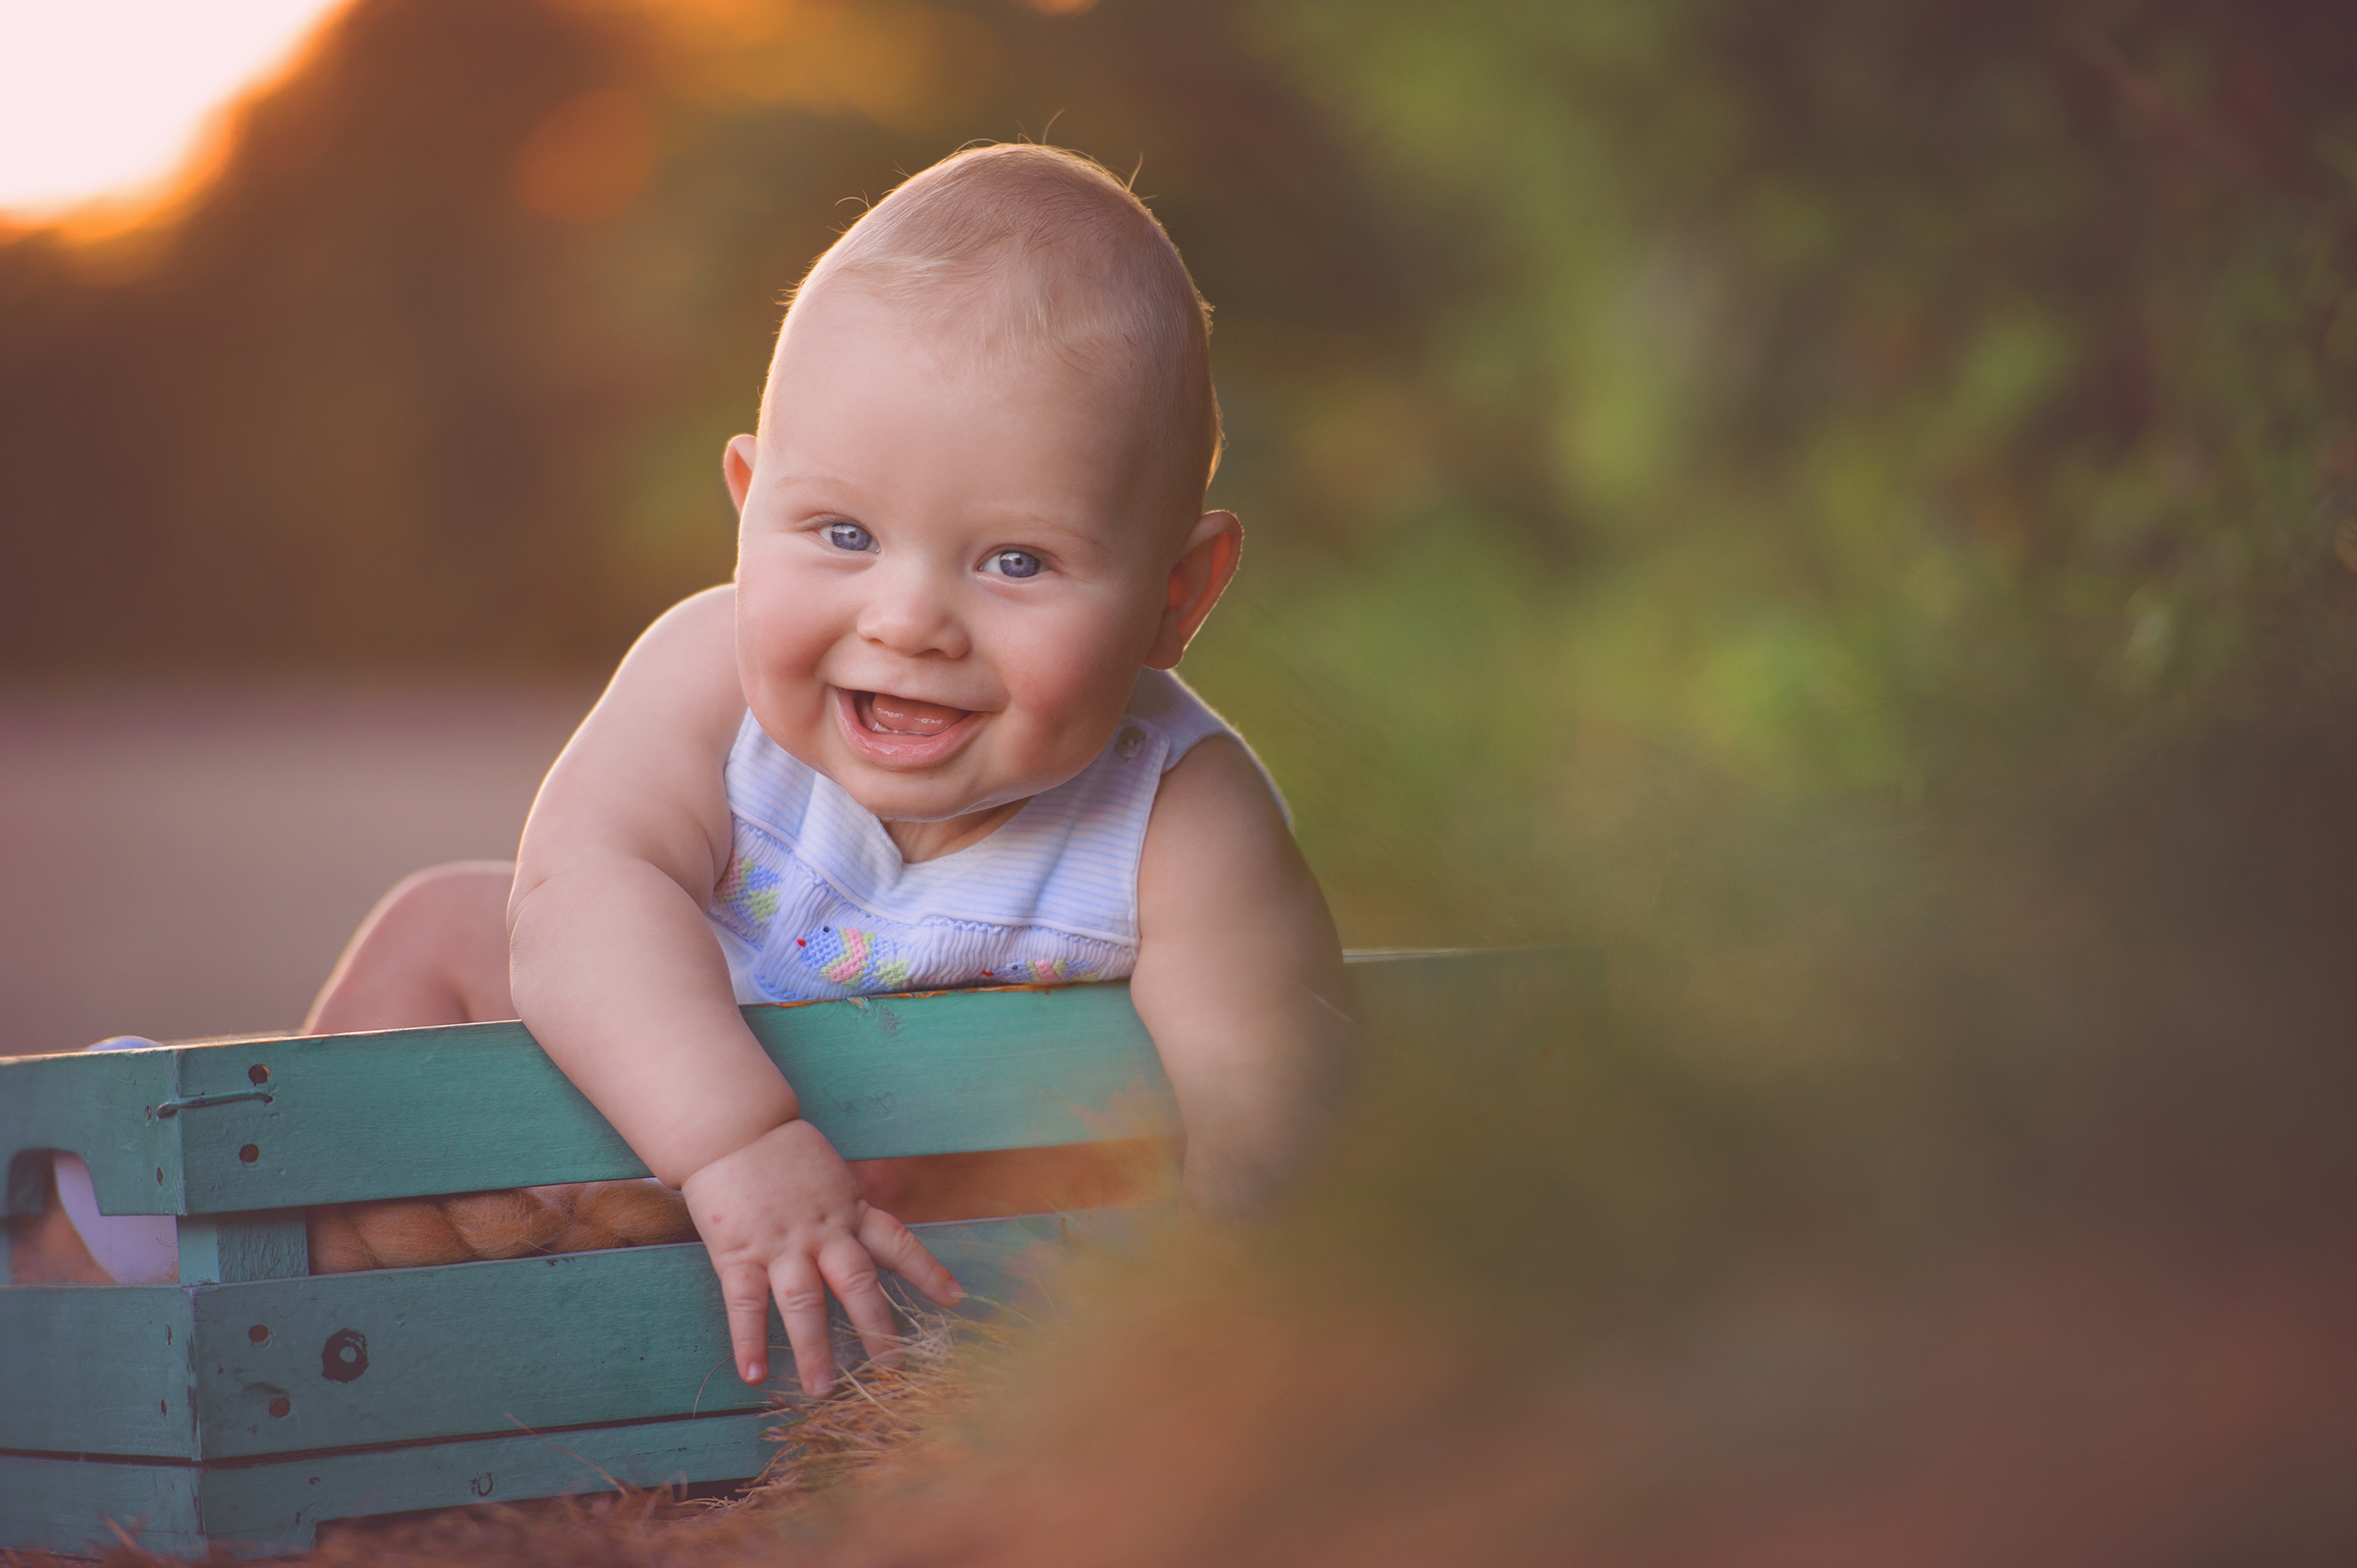 6 month sitter portrait photography session outdoors in Solana Beach, CA